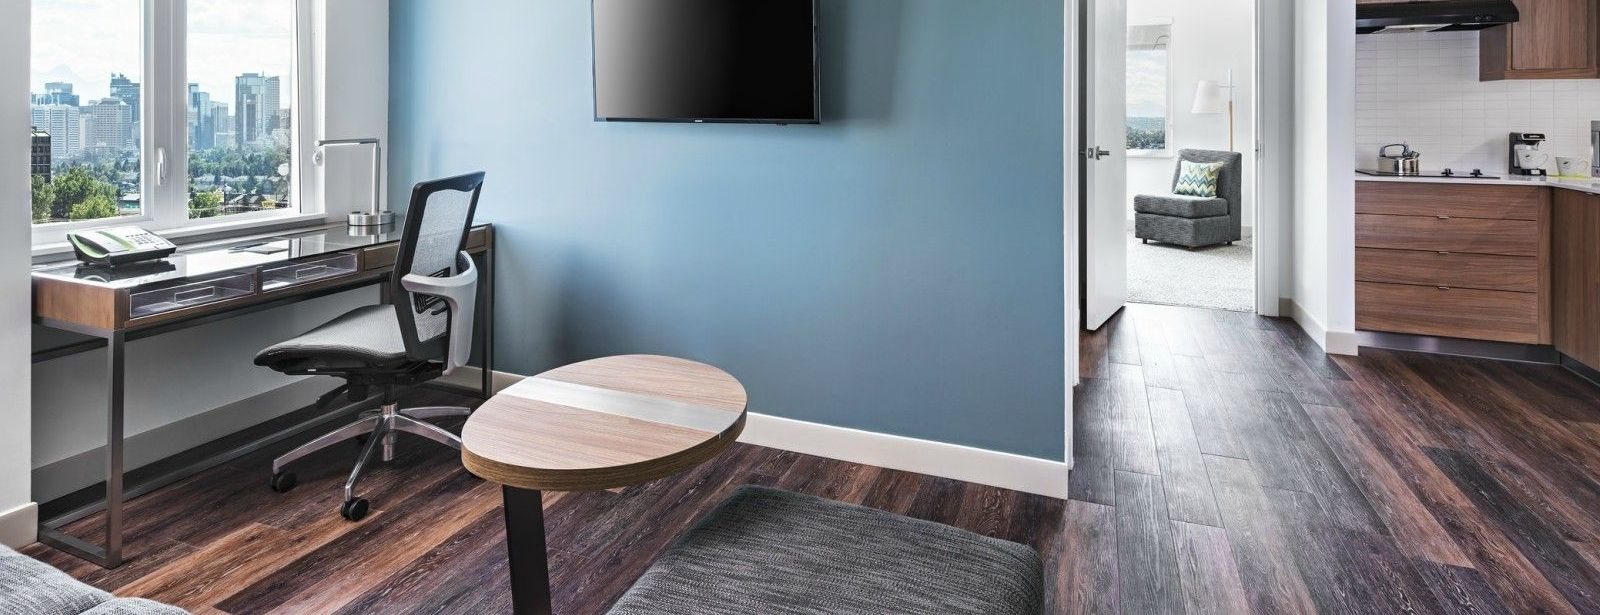 Calgary Airport accommordations - Executive Suite